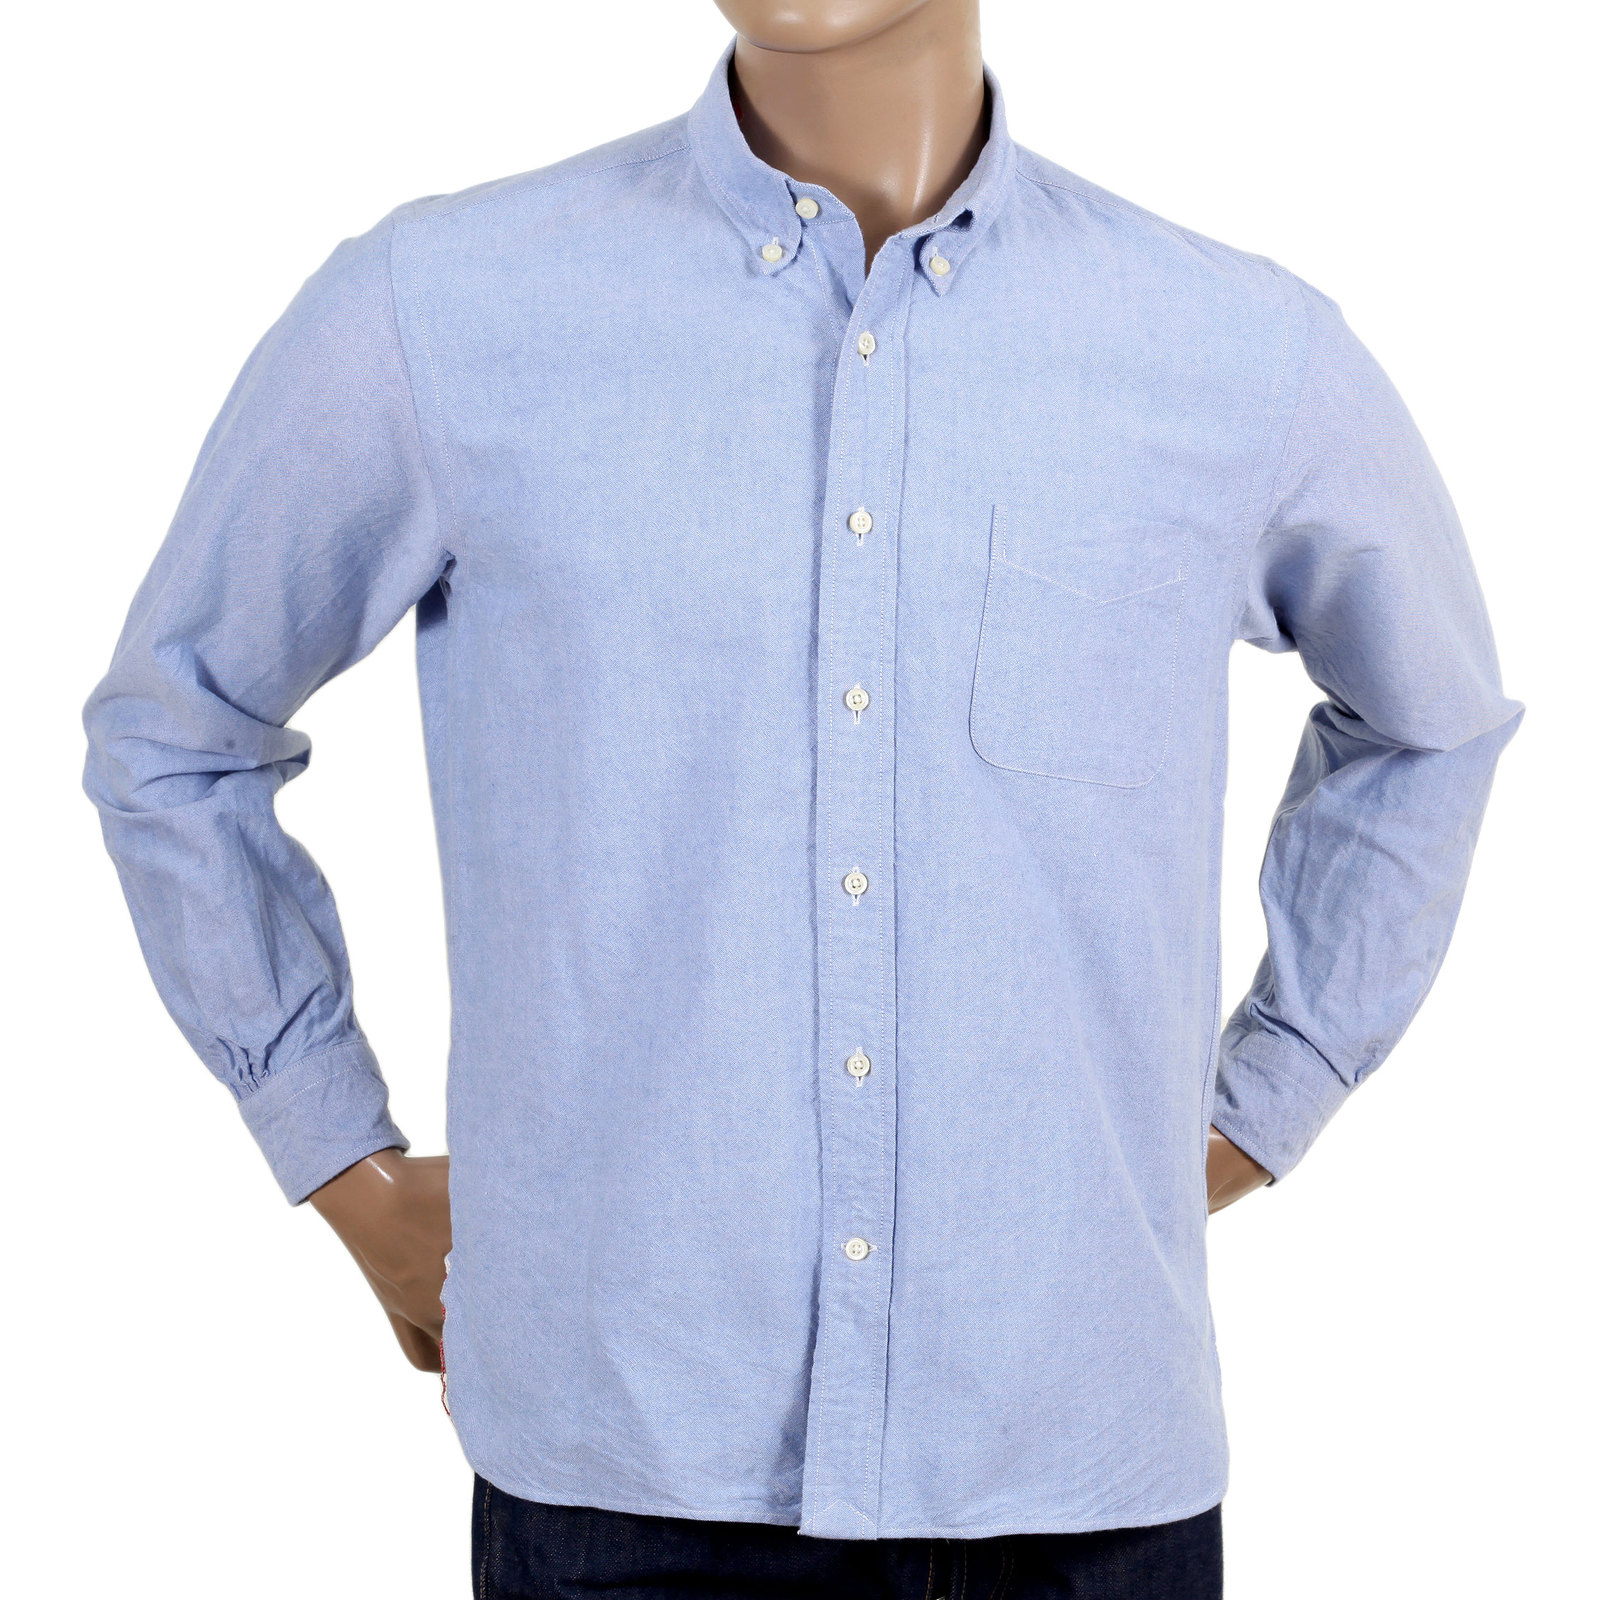 Buy oxford blue shirt for men with button down collars for Where to buy button down shirts